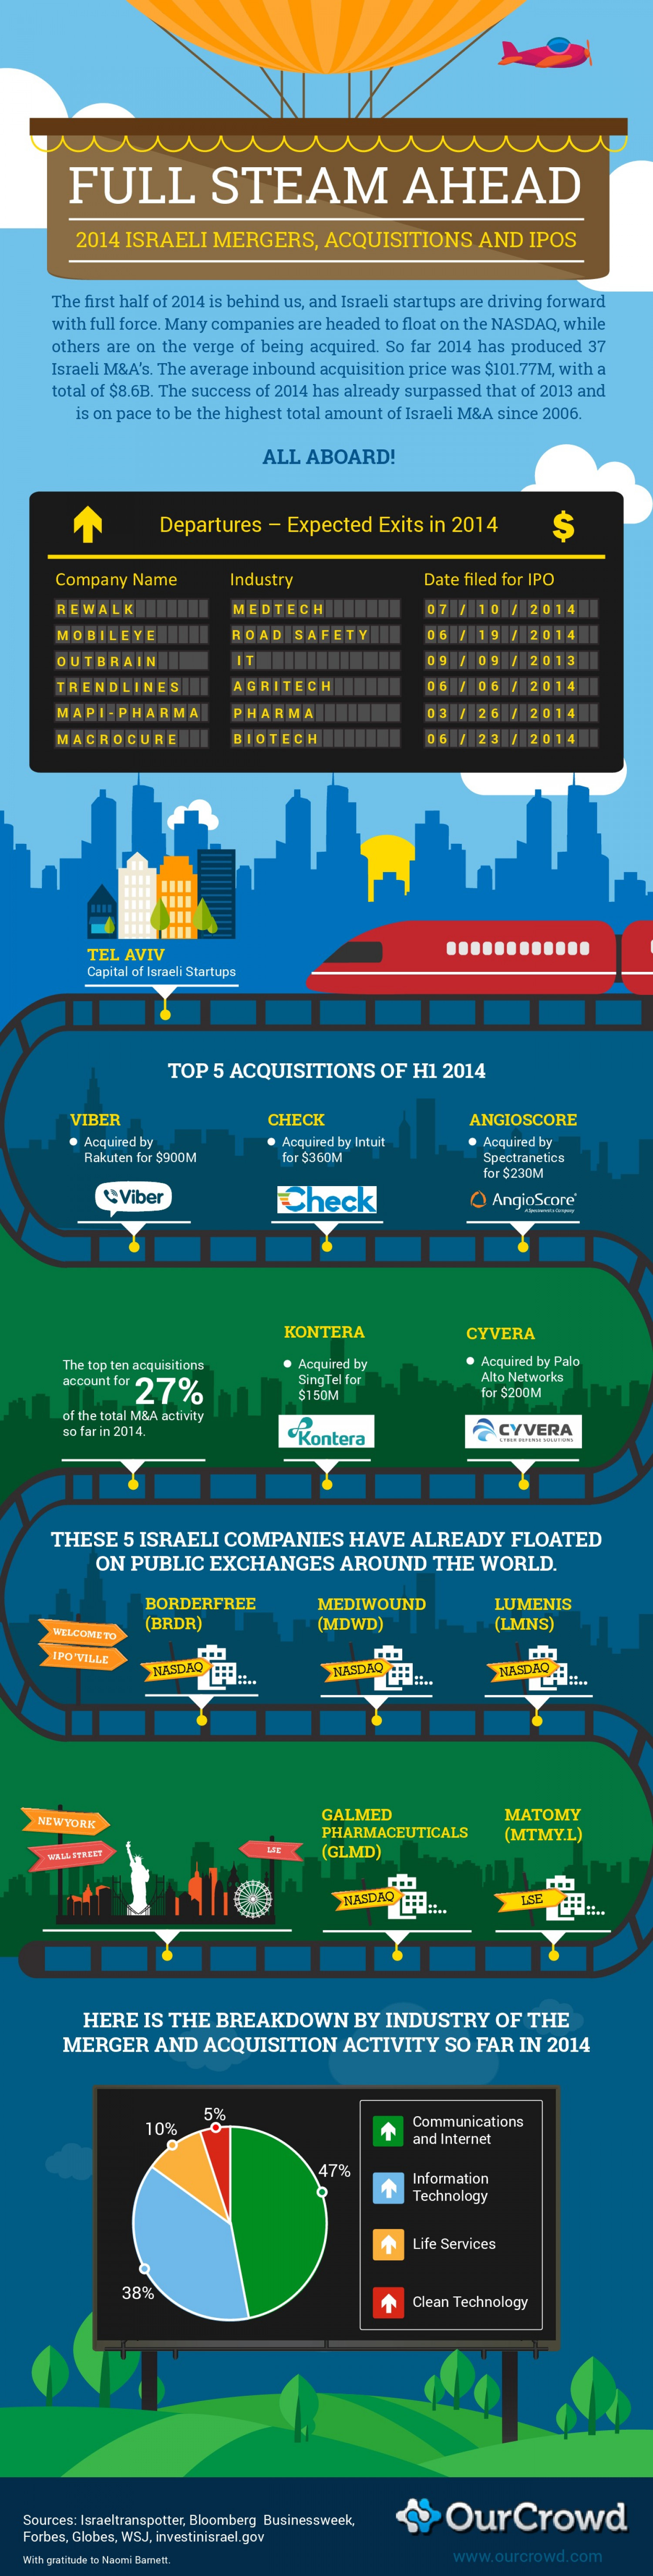 M&A and IPO Activity of Israeli companies, 1H 2014 Infographic